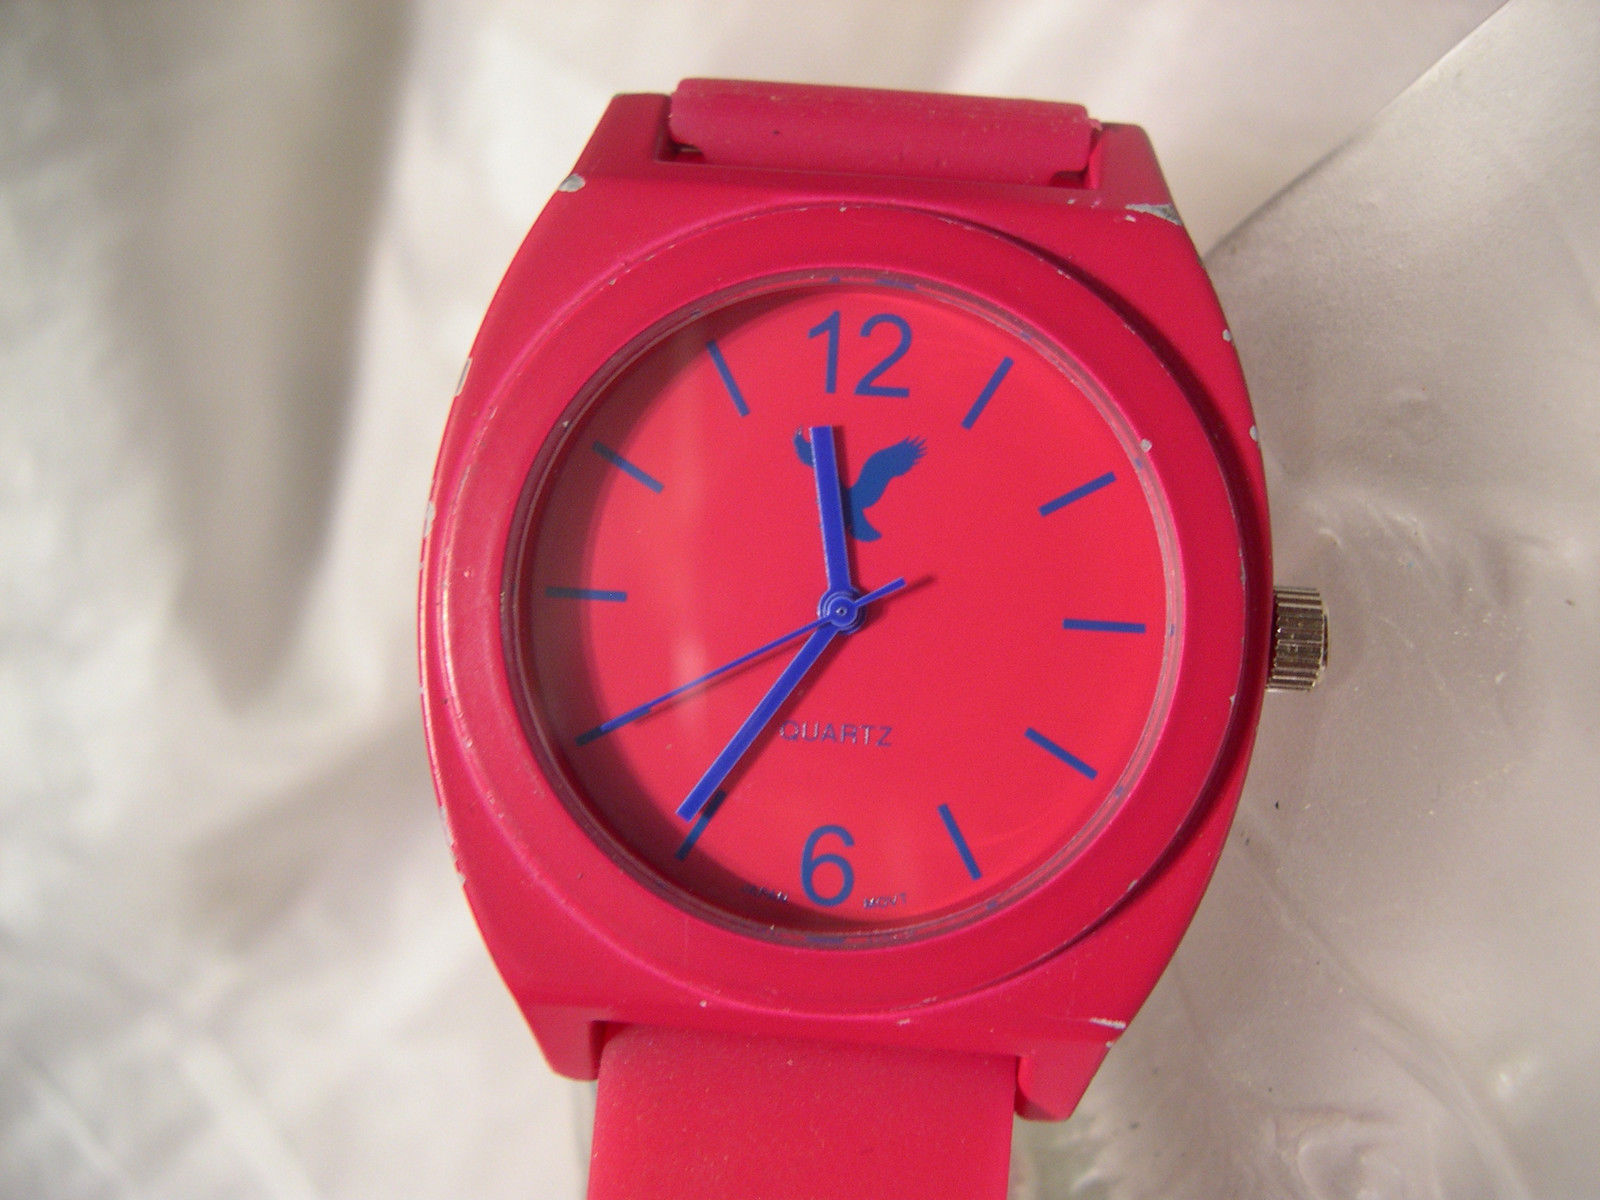 L58 American Eagle Outfitters Ladies Hot Pink Watch 9.5u0026quot; Silicon Band W/b - Wristwatches